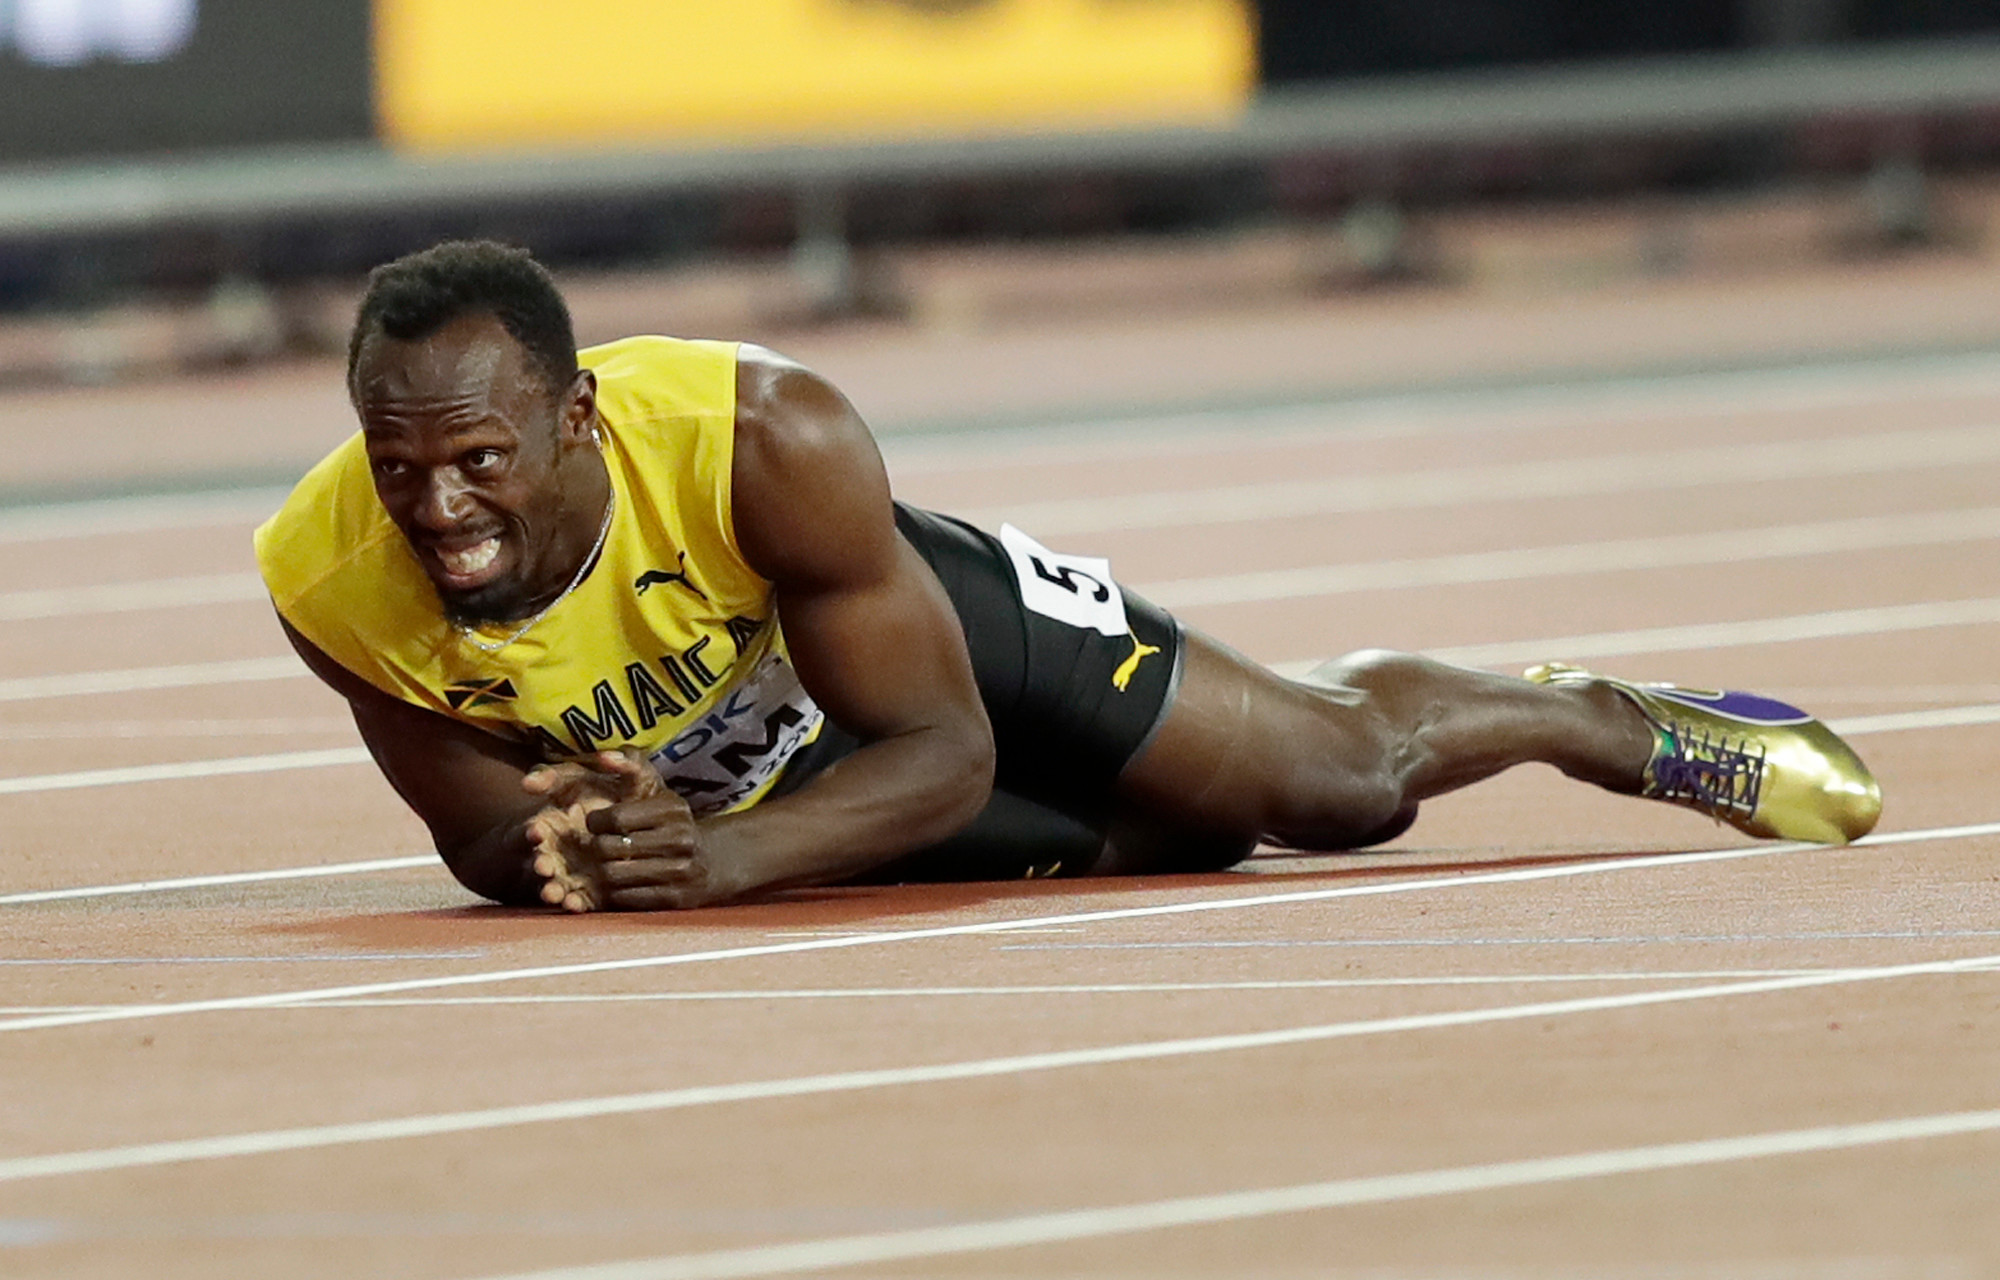 Usain Bolt baffled by drug test request